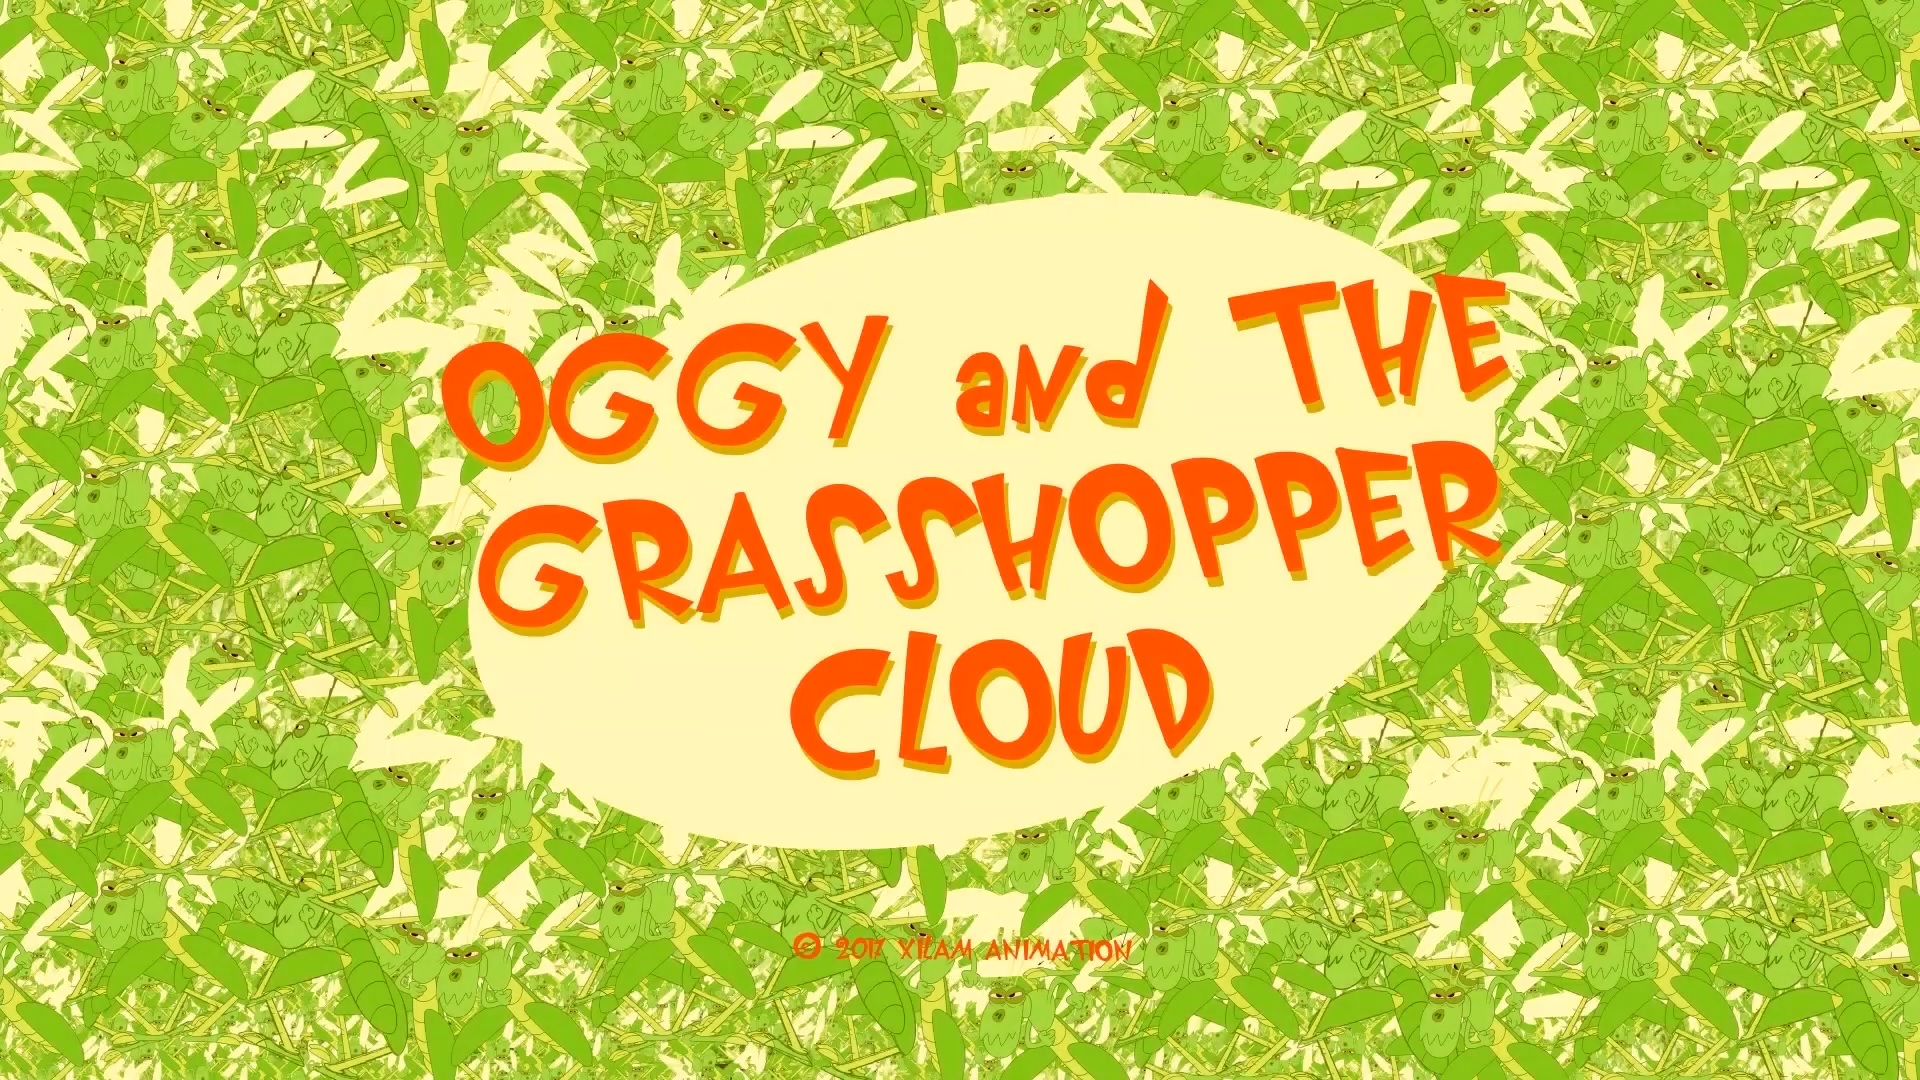 Oggy and the Grasshopper Cloud